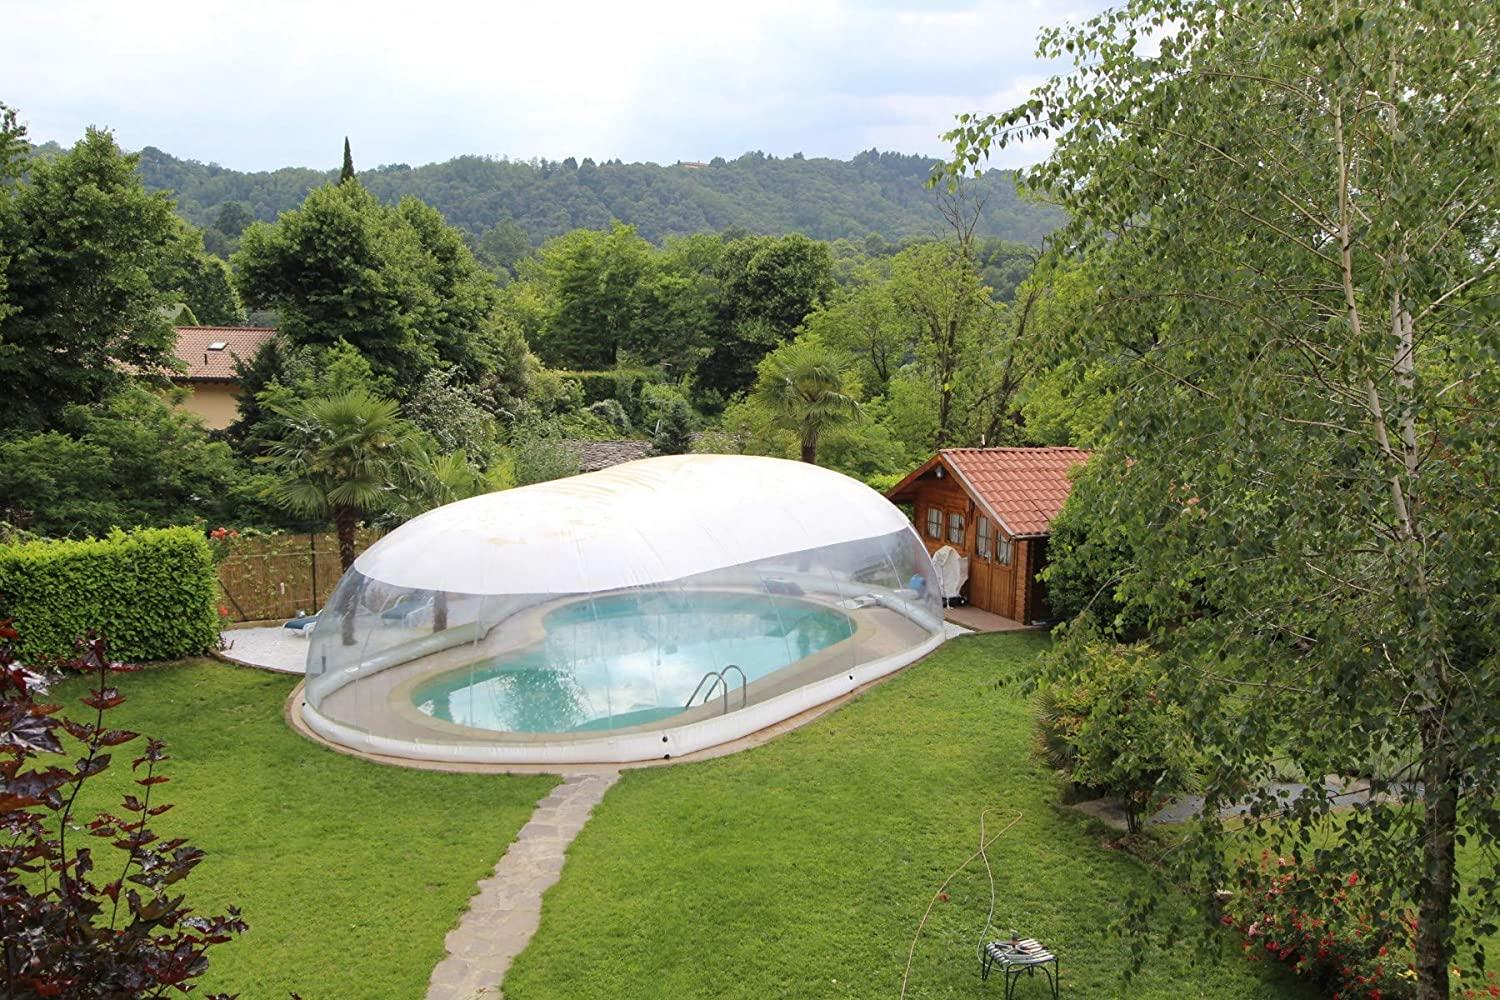 Clear Above Ground Swimming Pool Bubble Dome TentInflatable Hot Tub Swimming Pool Enclosure Solar Dome Cover Tent